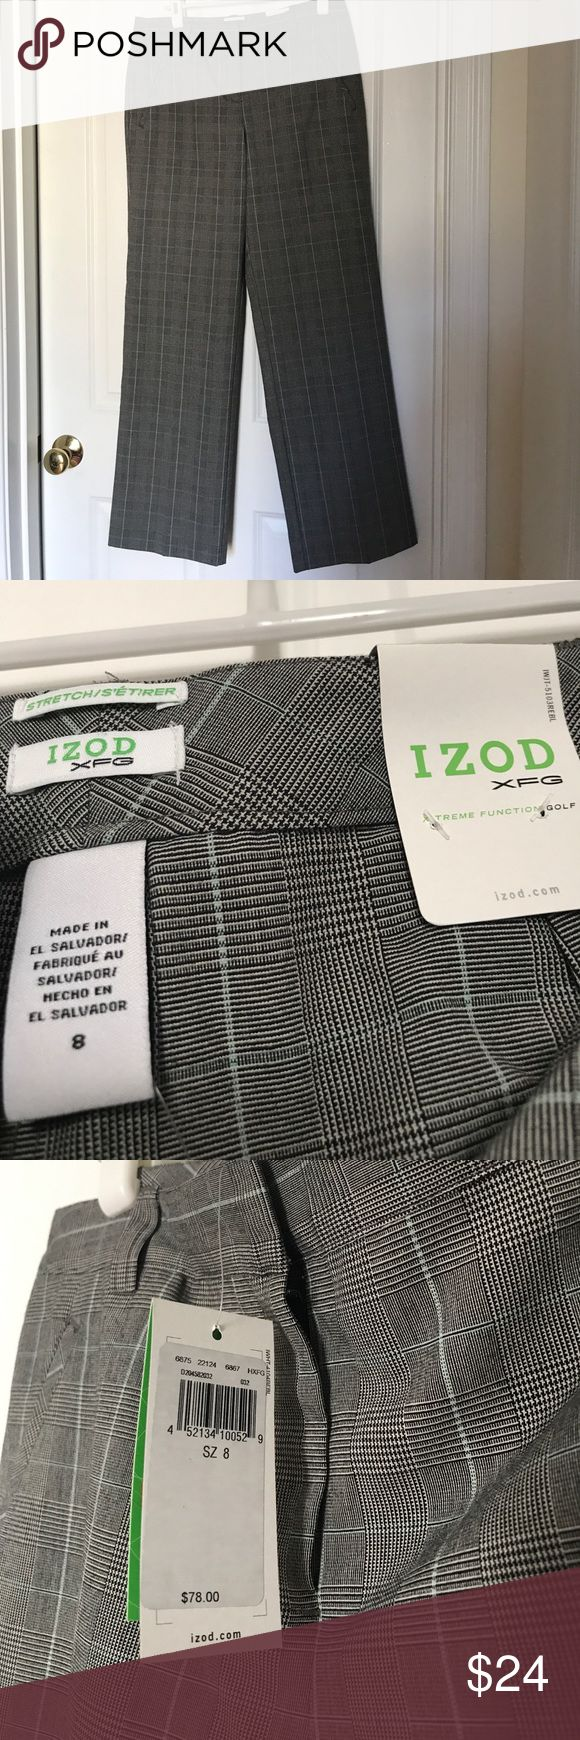 "NWT Ladies Golf Trousers Glen Plaid Size 8 From my Charleston closet, these are beautiful ""dressy"" golf trousers by IZOD. Mid-rise, full straight leg, with stretch. These would look great either on or off the golf course! Dark gray/black glen plaid with very pale blue-grey in the pattern. These are brand new with tags. Length is 30 ½"". Izod Pants Straight Leg"